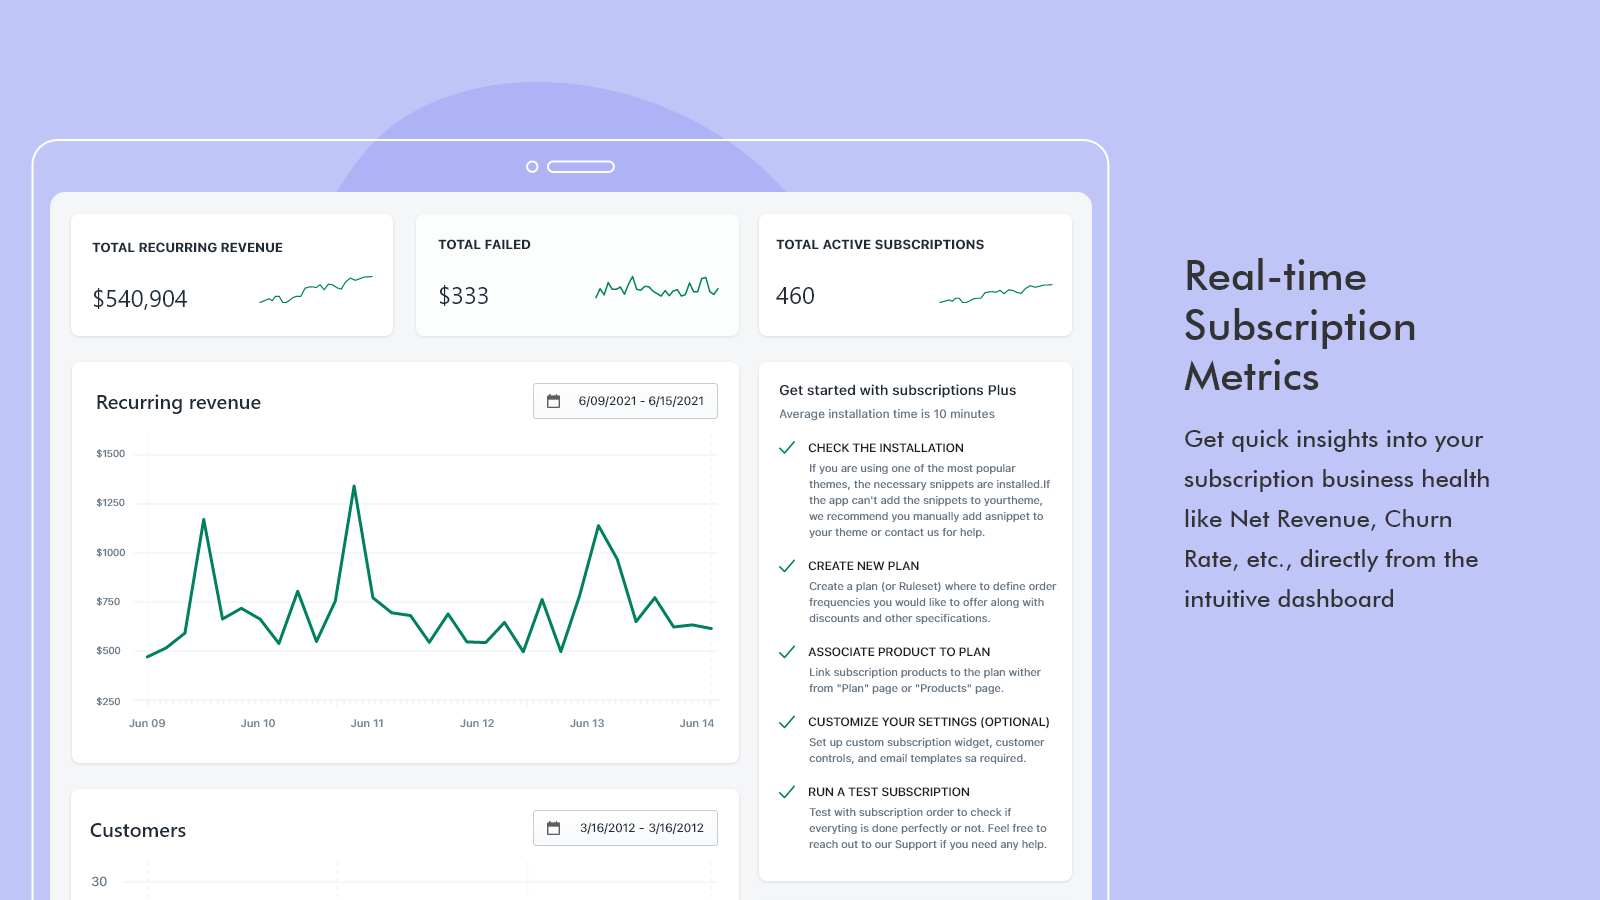 Real-time subscription metrics - Subscription products